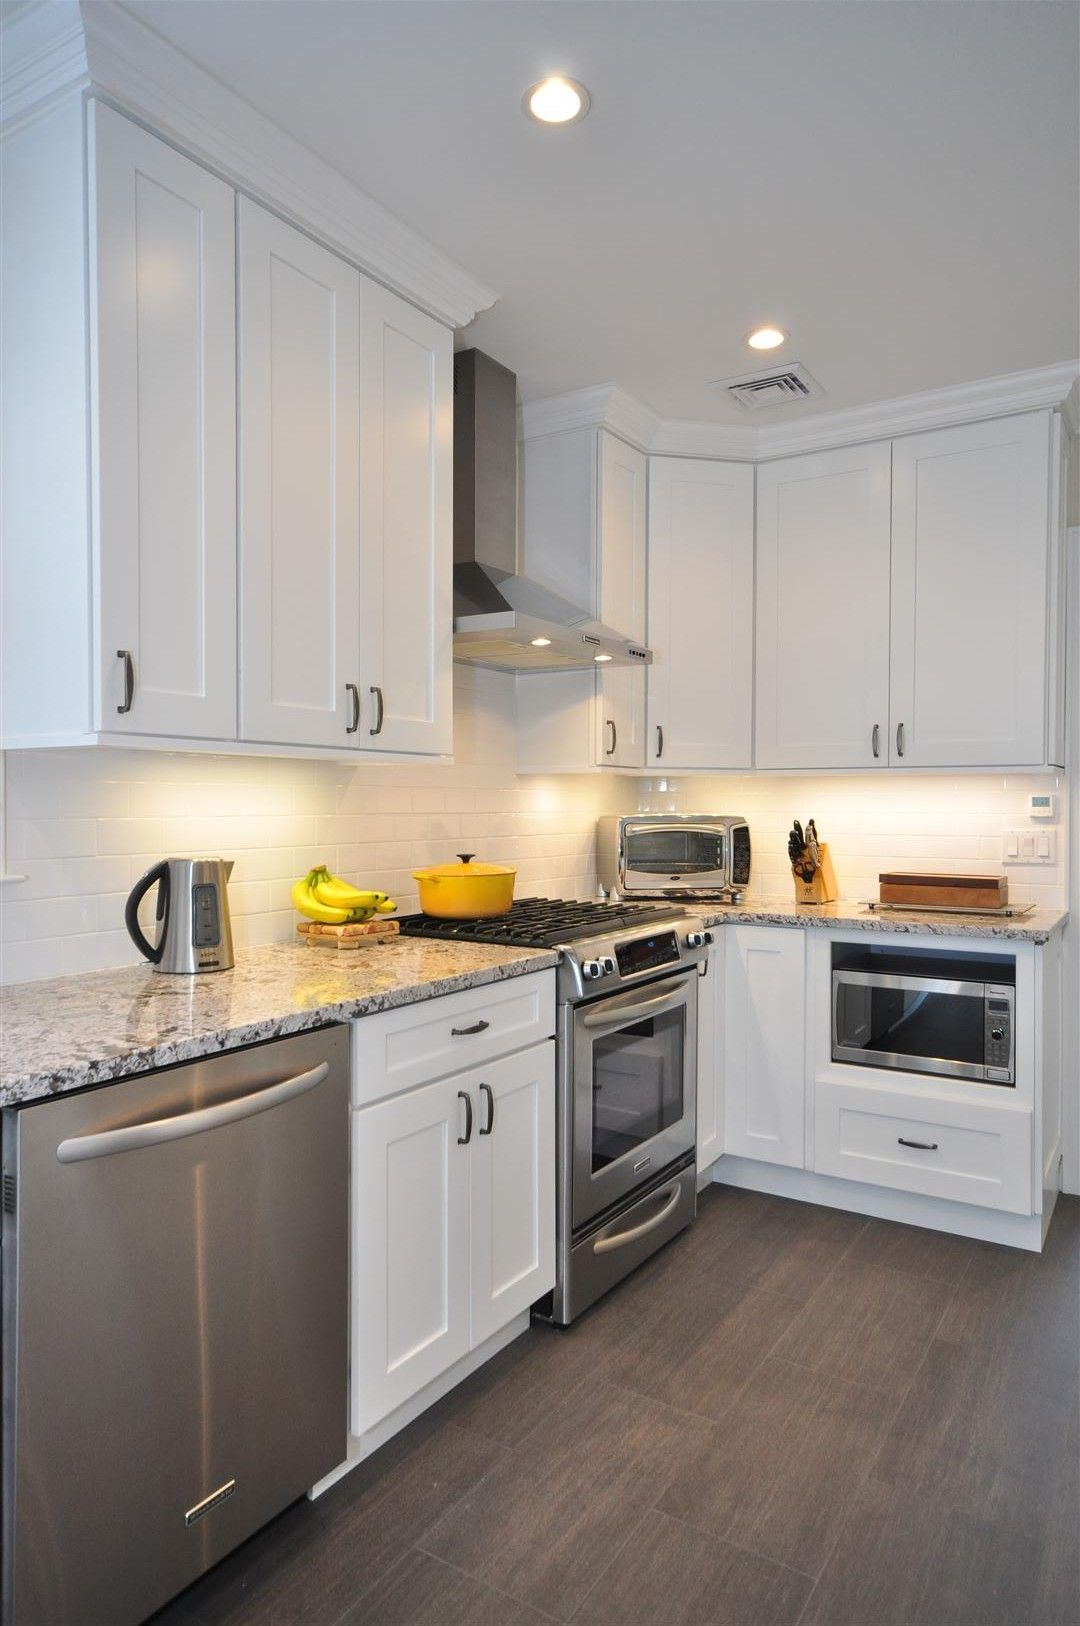 cheap white kitchen cabinets white shaker kitchen cabinets Gray Floor Gray Counter tops